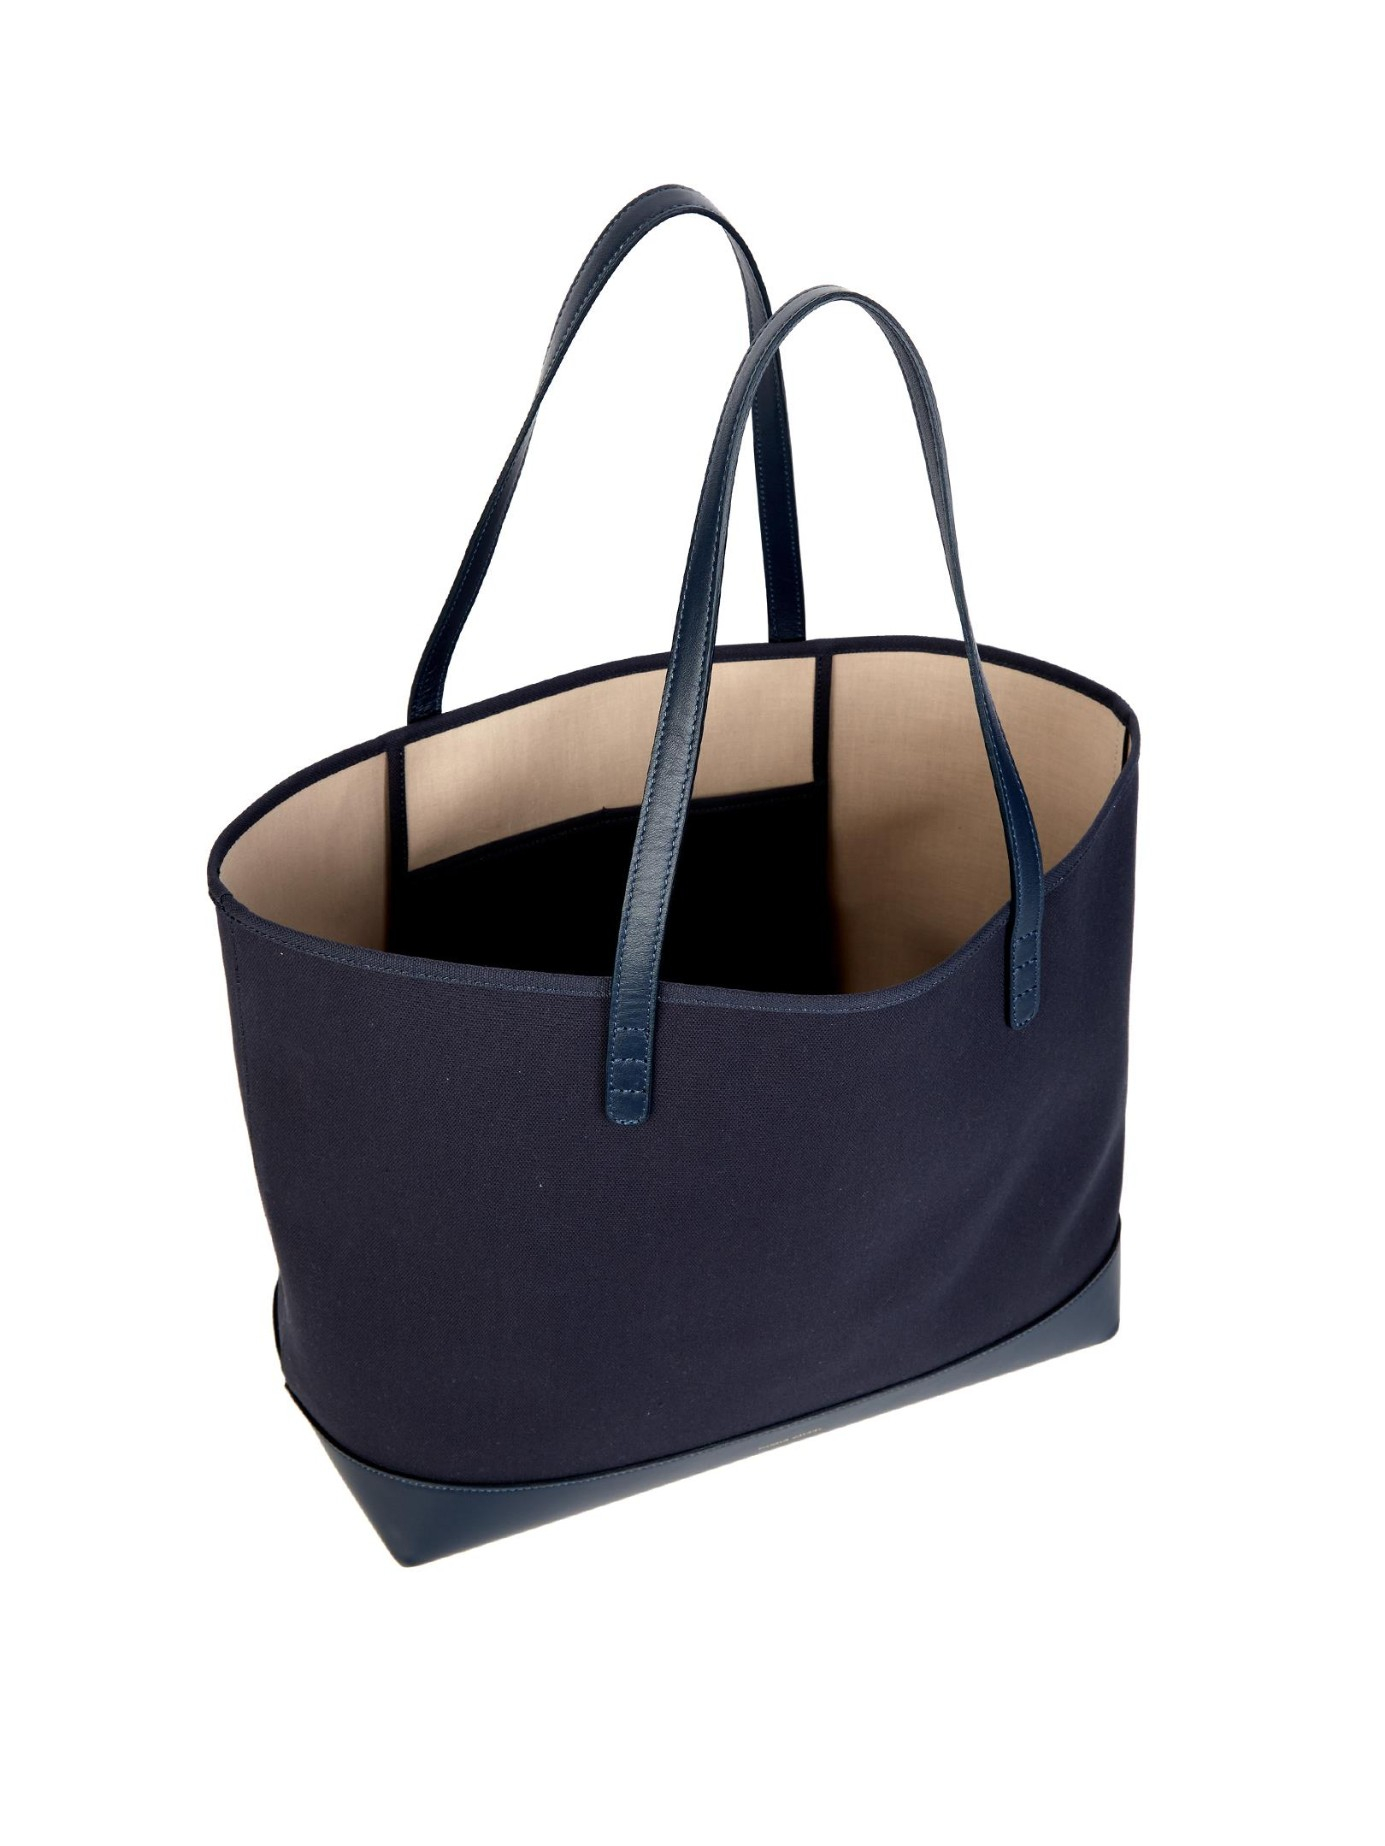 5d2298f974e6 Lyst - Mansur Gavriel Large Canvas And Leather Tote in Blue